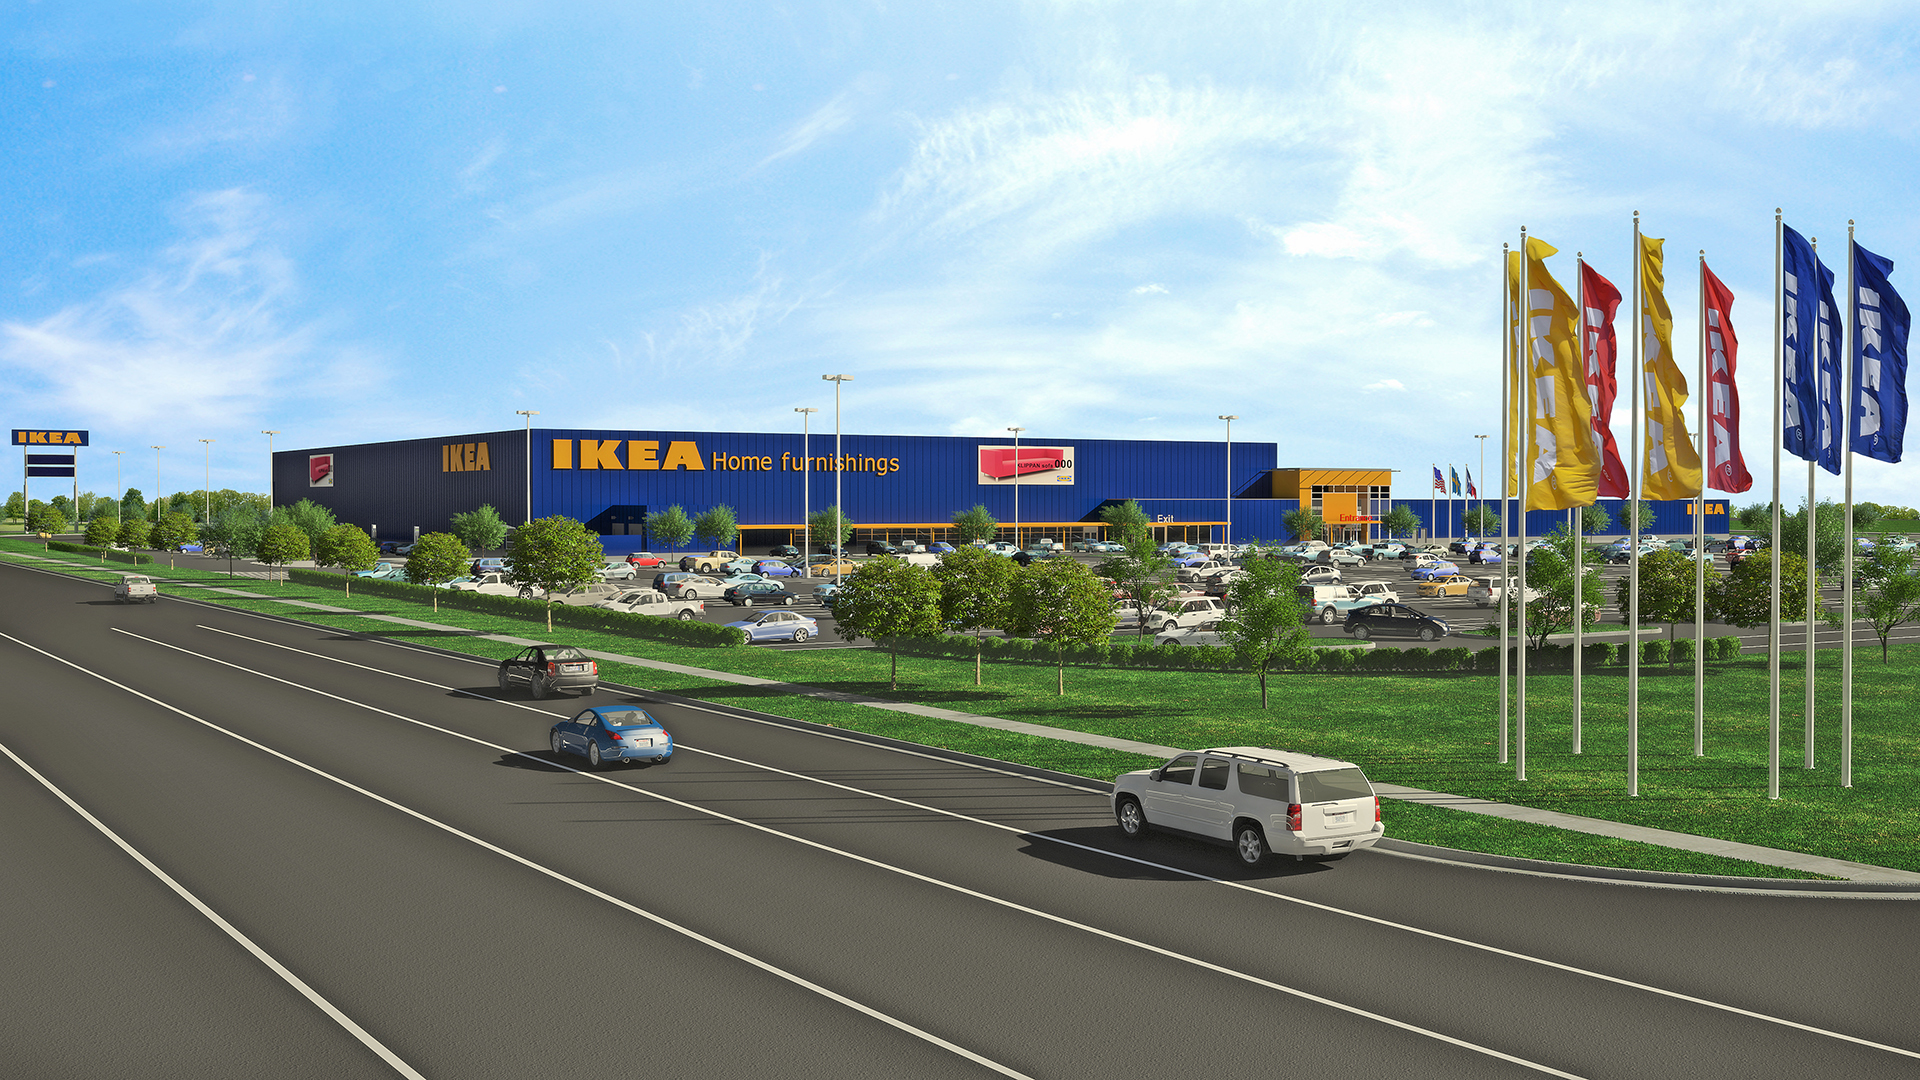 ikea submits plans for a store in grand prairie texas to open fall 2017 as 2nd dallas fort. Black Bedroom Furniture Sets. Home Design Ideas